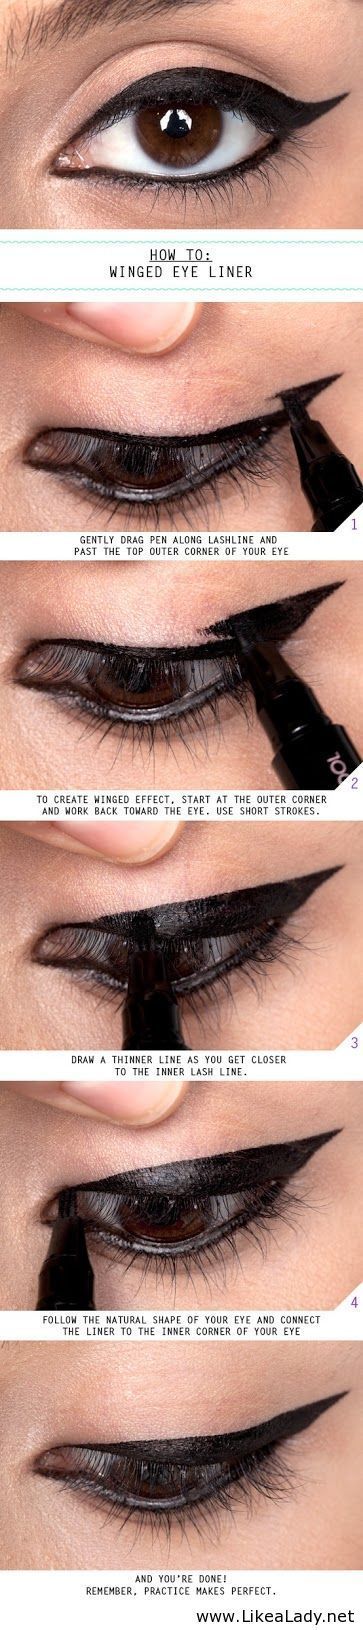 Winged eyeliner is the devil. But I'm always willing to try